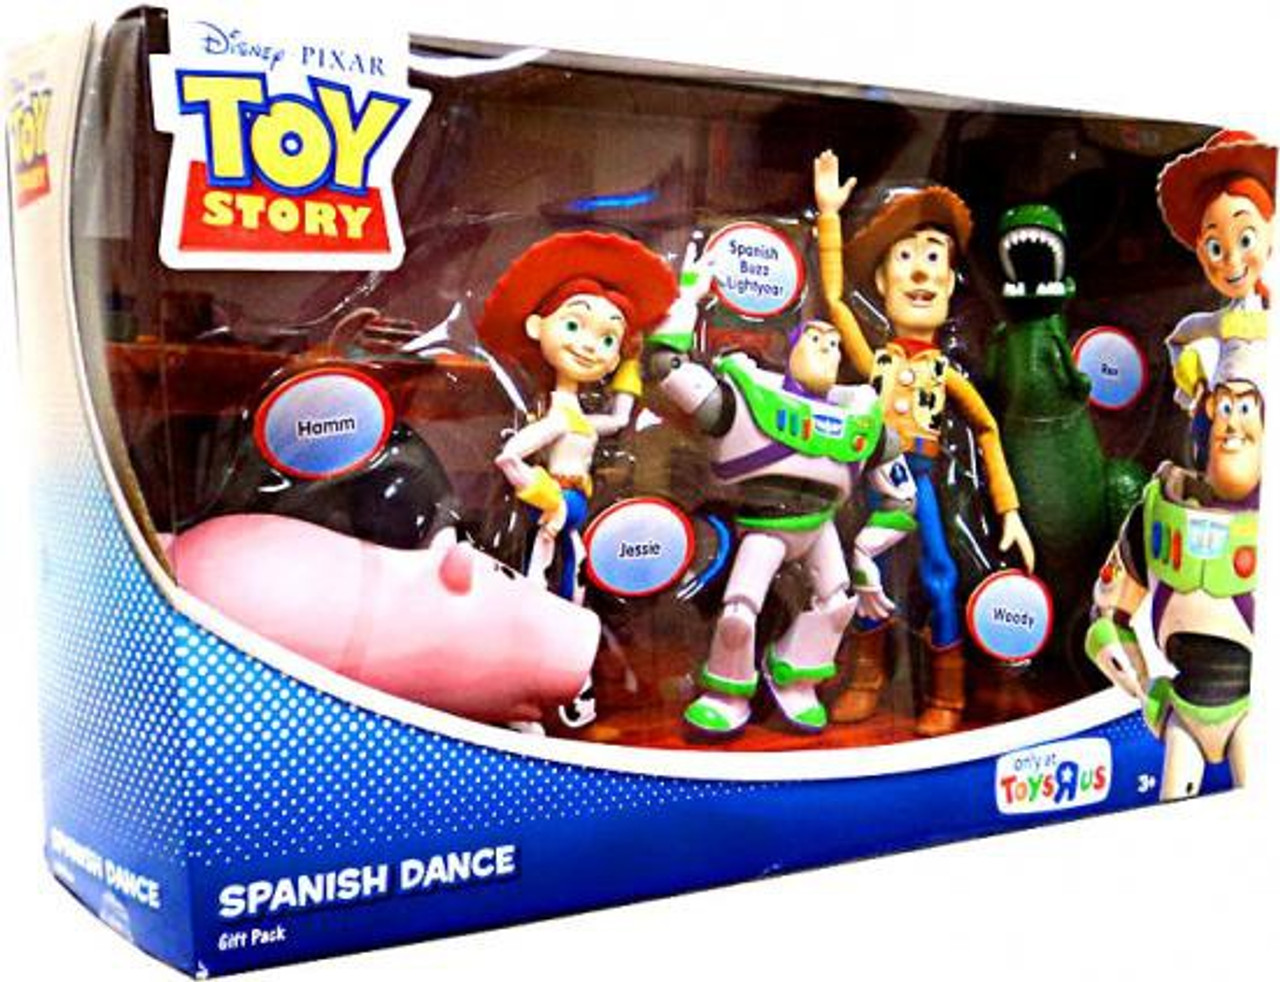 Toy Story Action Figures Set : Toy story spanish dance exclusive action figure set mattel toys